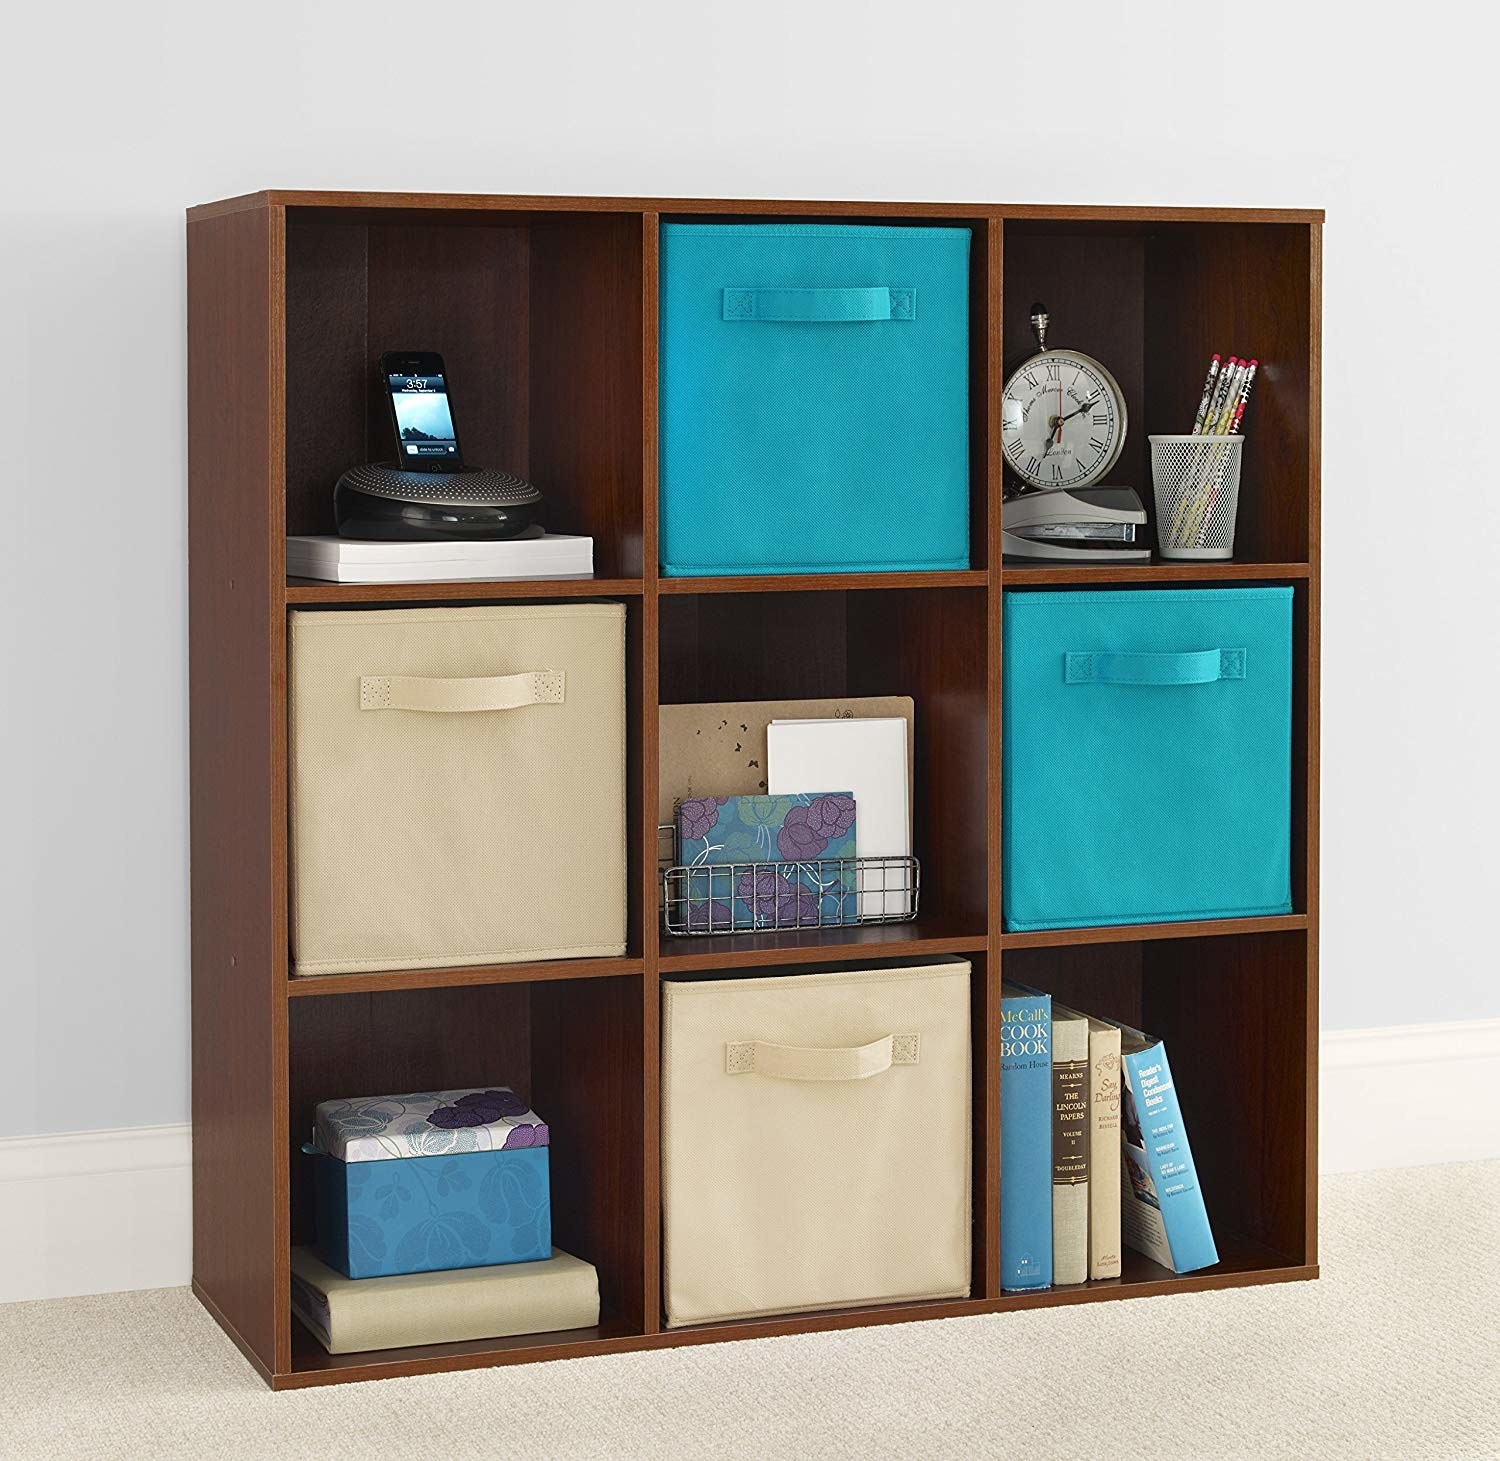 brown nine-cube organizer with four fabric drawers and other random stuff in each cube